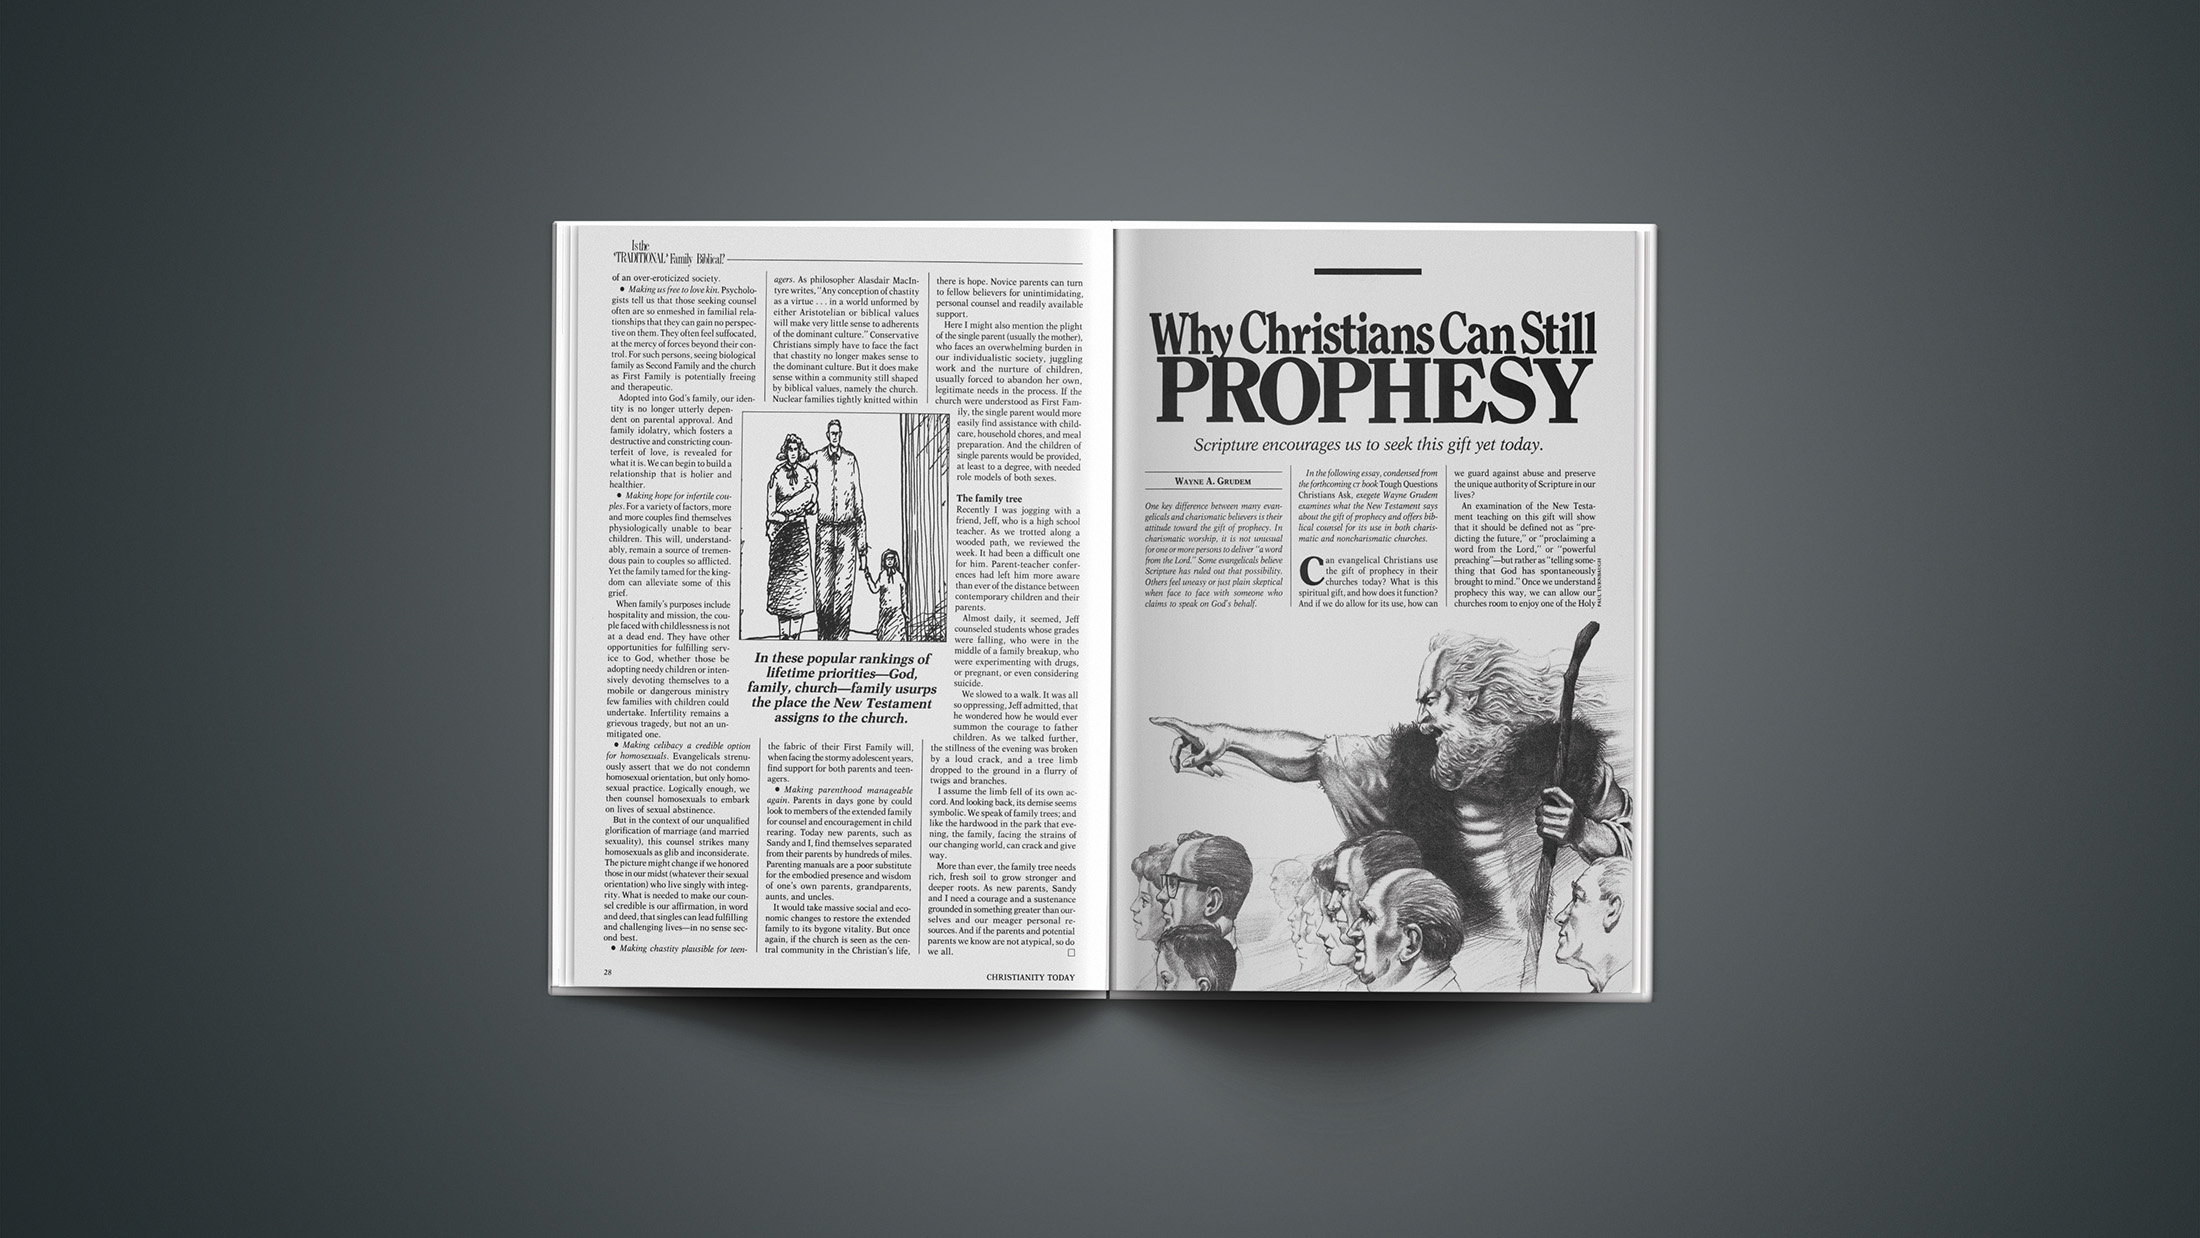 Why Christians Can Still Prophesy